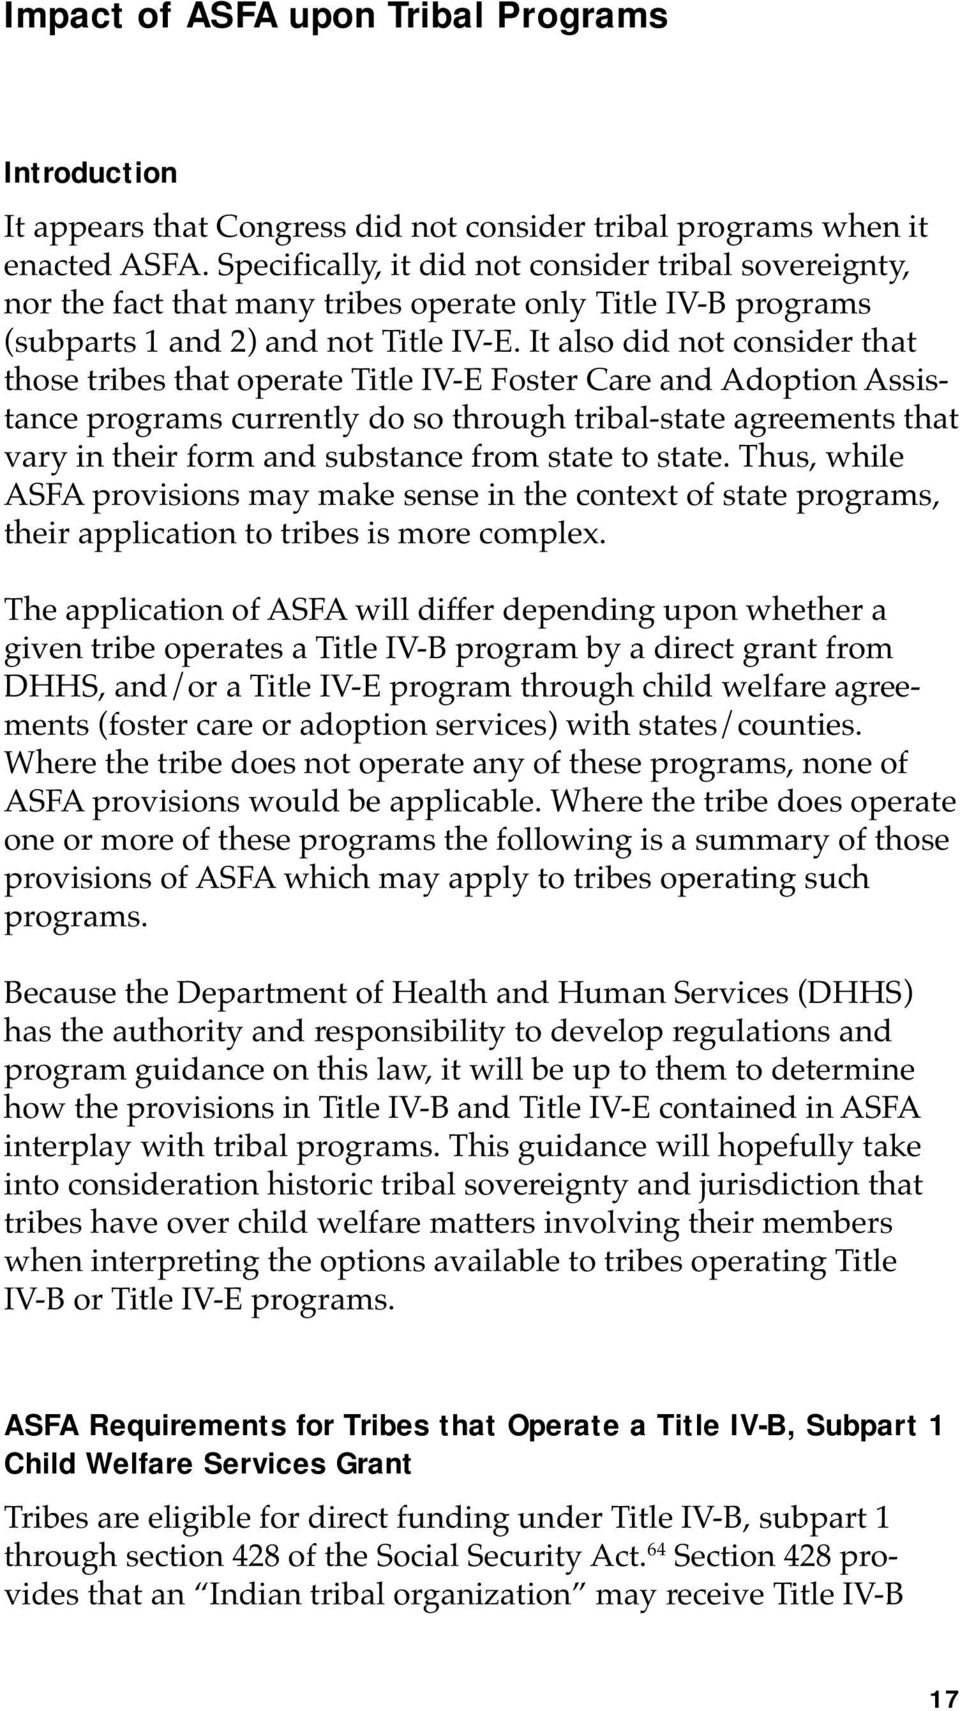 It also did not consider that those tribes that operate Title IV-E Foster Care and Adoption Assistance programs currently do so through tribal-state agreements that vary in their form and substance